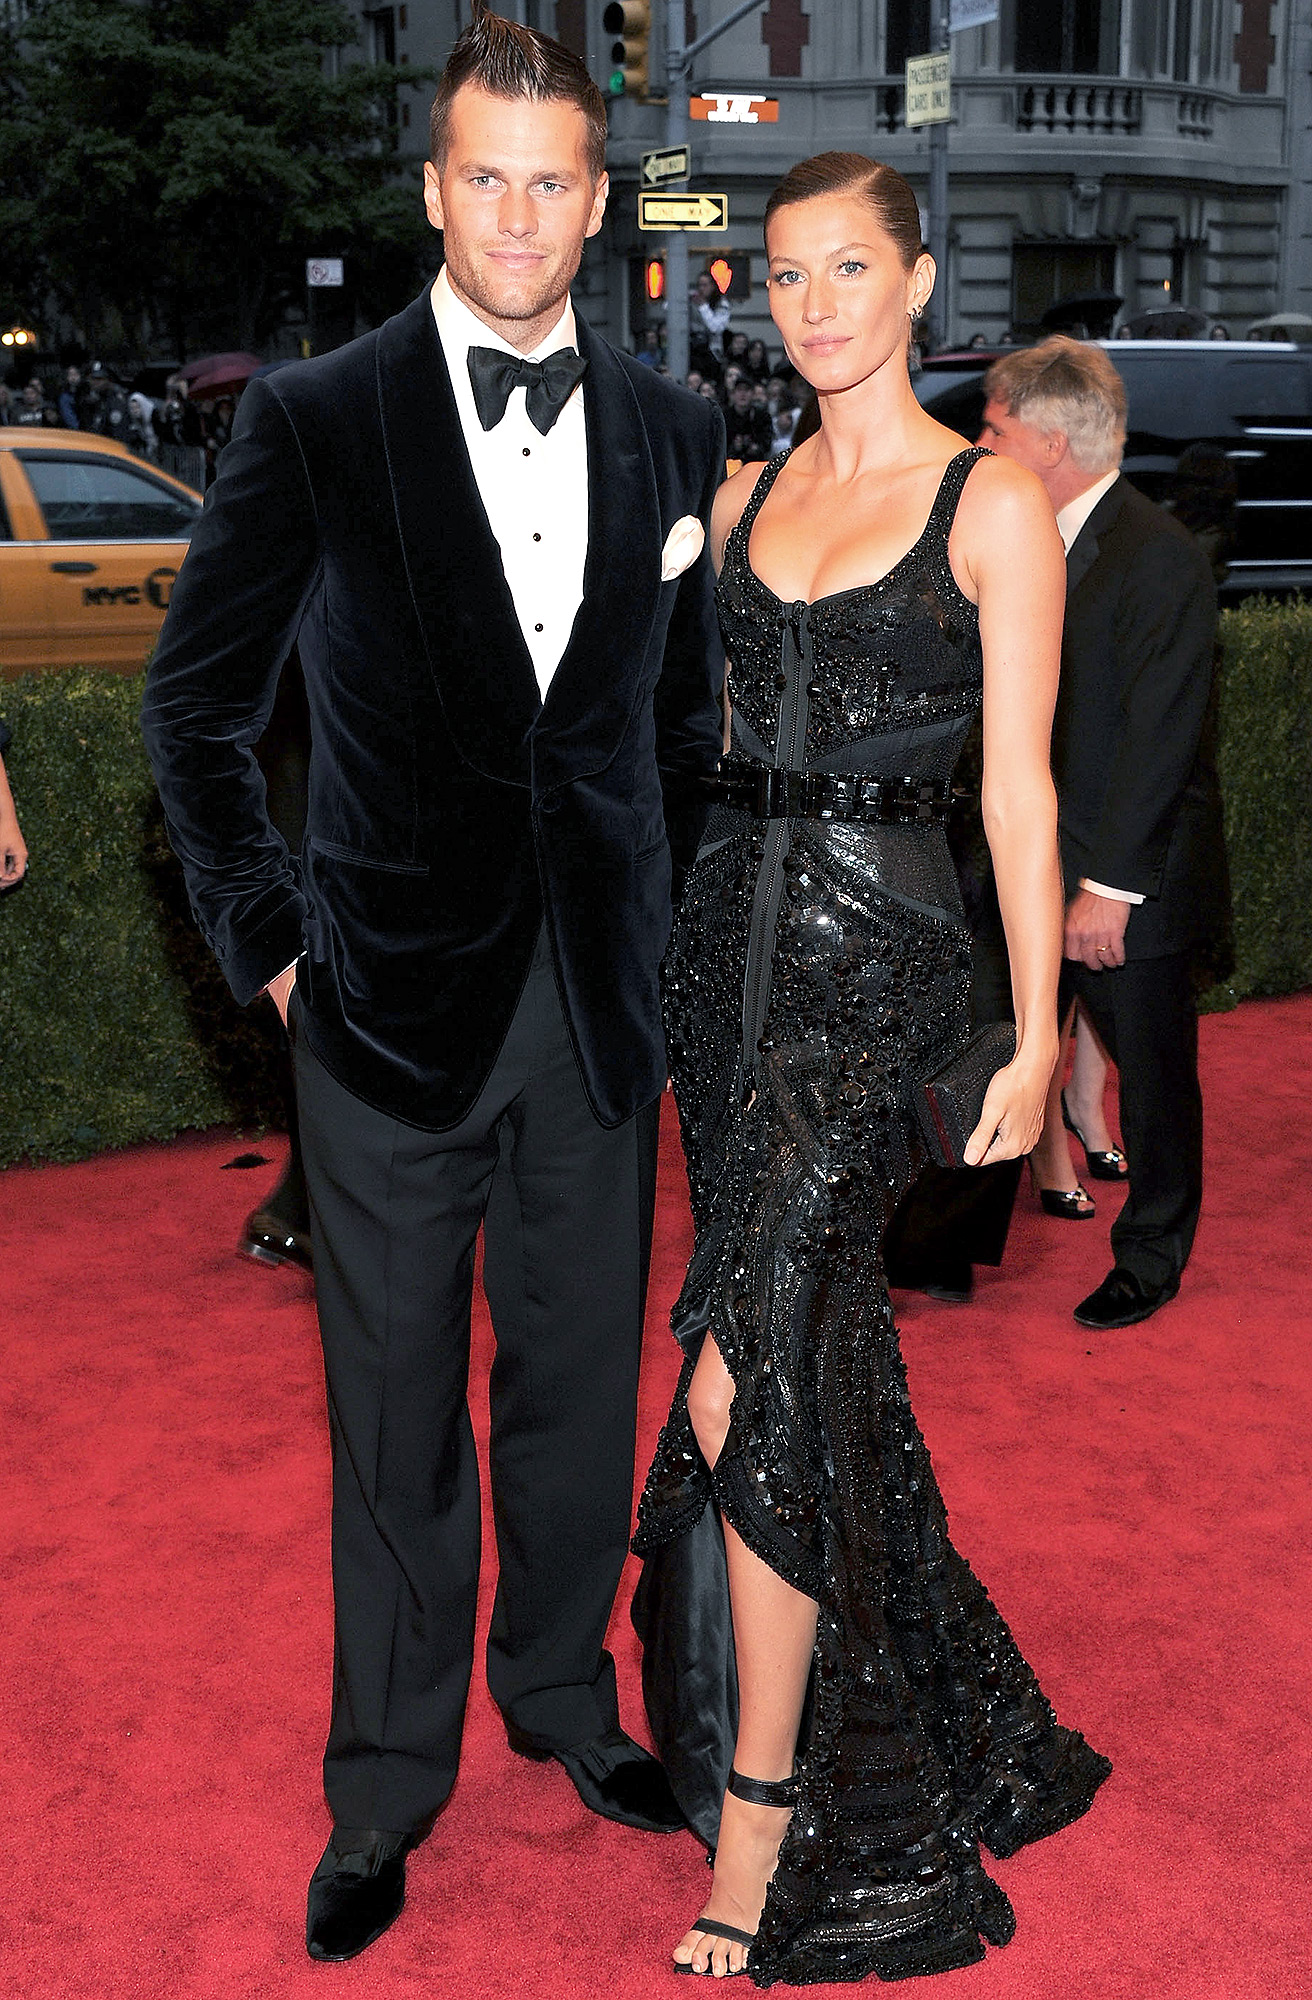 """NEW YORK, NY - MAY 07: NFL player Tom Brady and model Gisele Bundchen attend the """"Schiaparelli And Prada: Impossible Conversations"""" Costume Institute Gala at the Metropolitan Museum of Art on May 7, 2012 in New York City. (Photo by Larry Busacca/Getty Images)"""